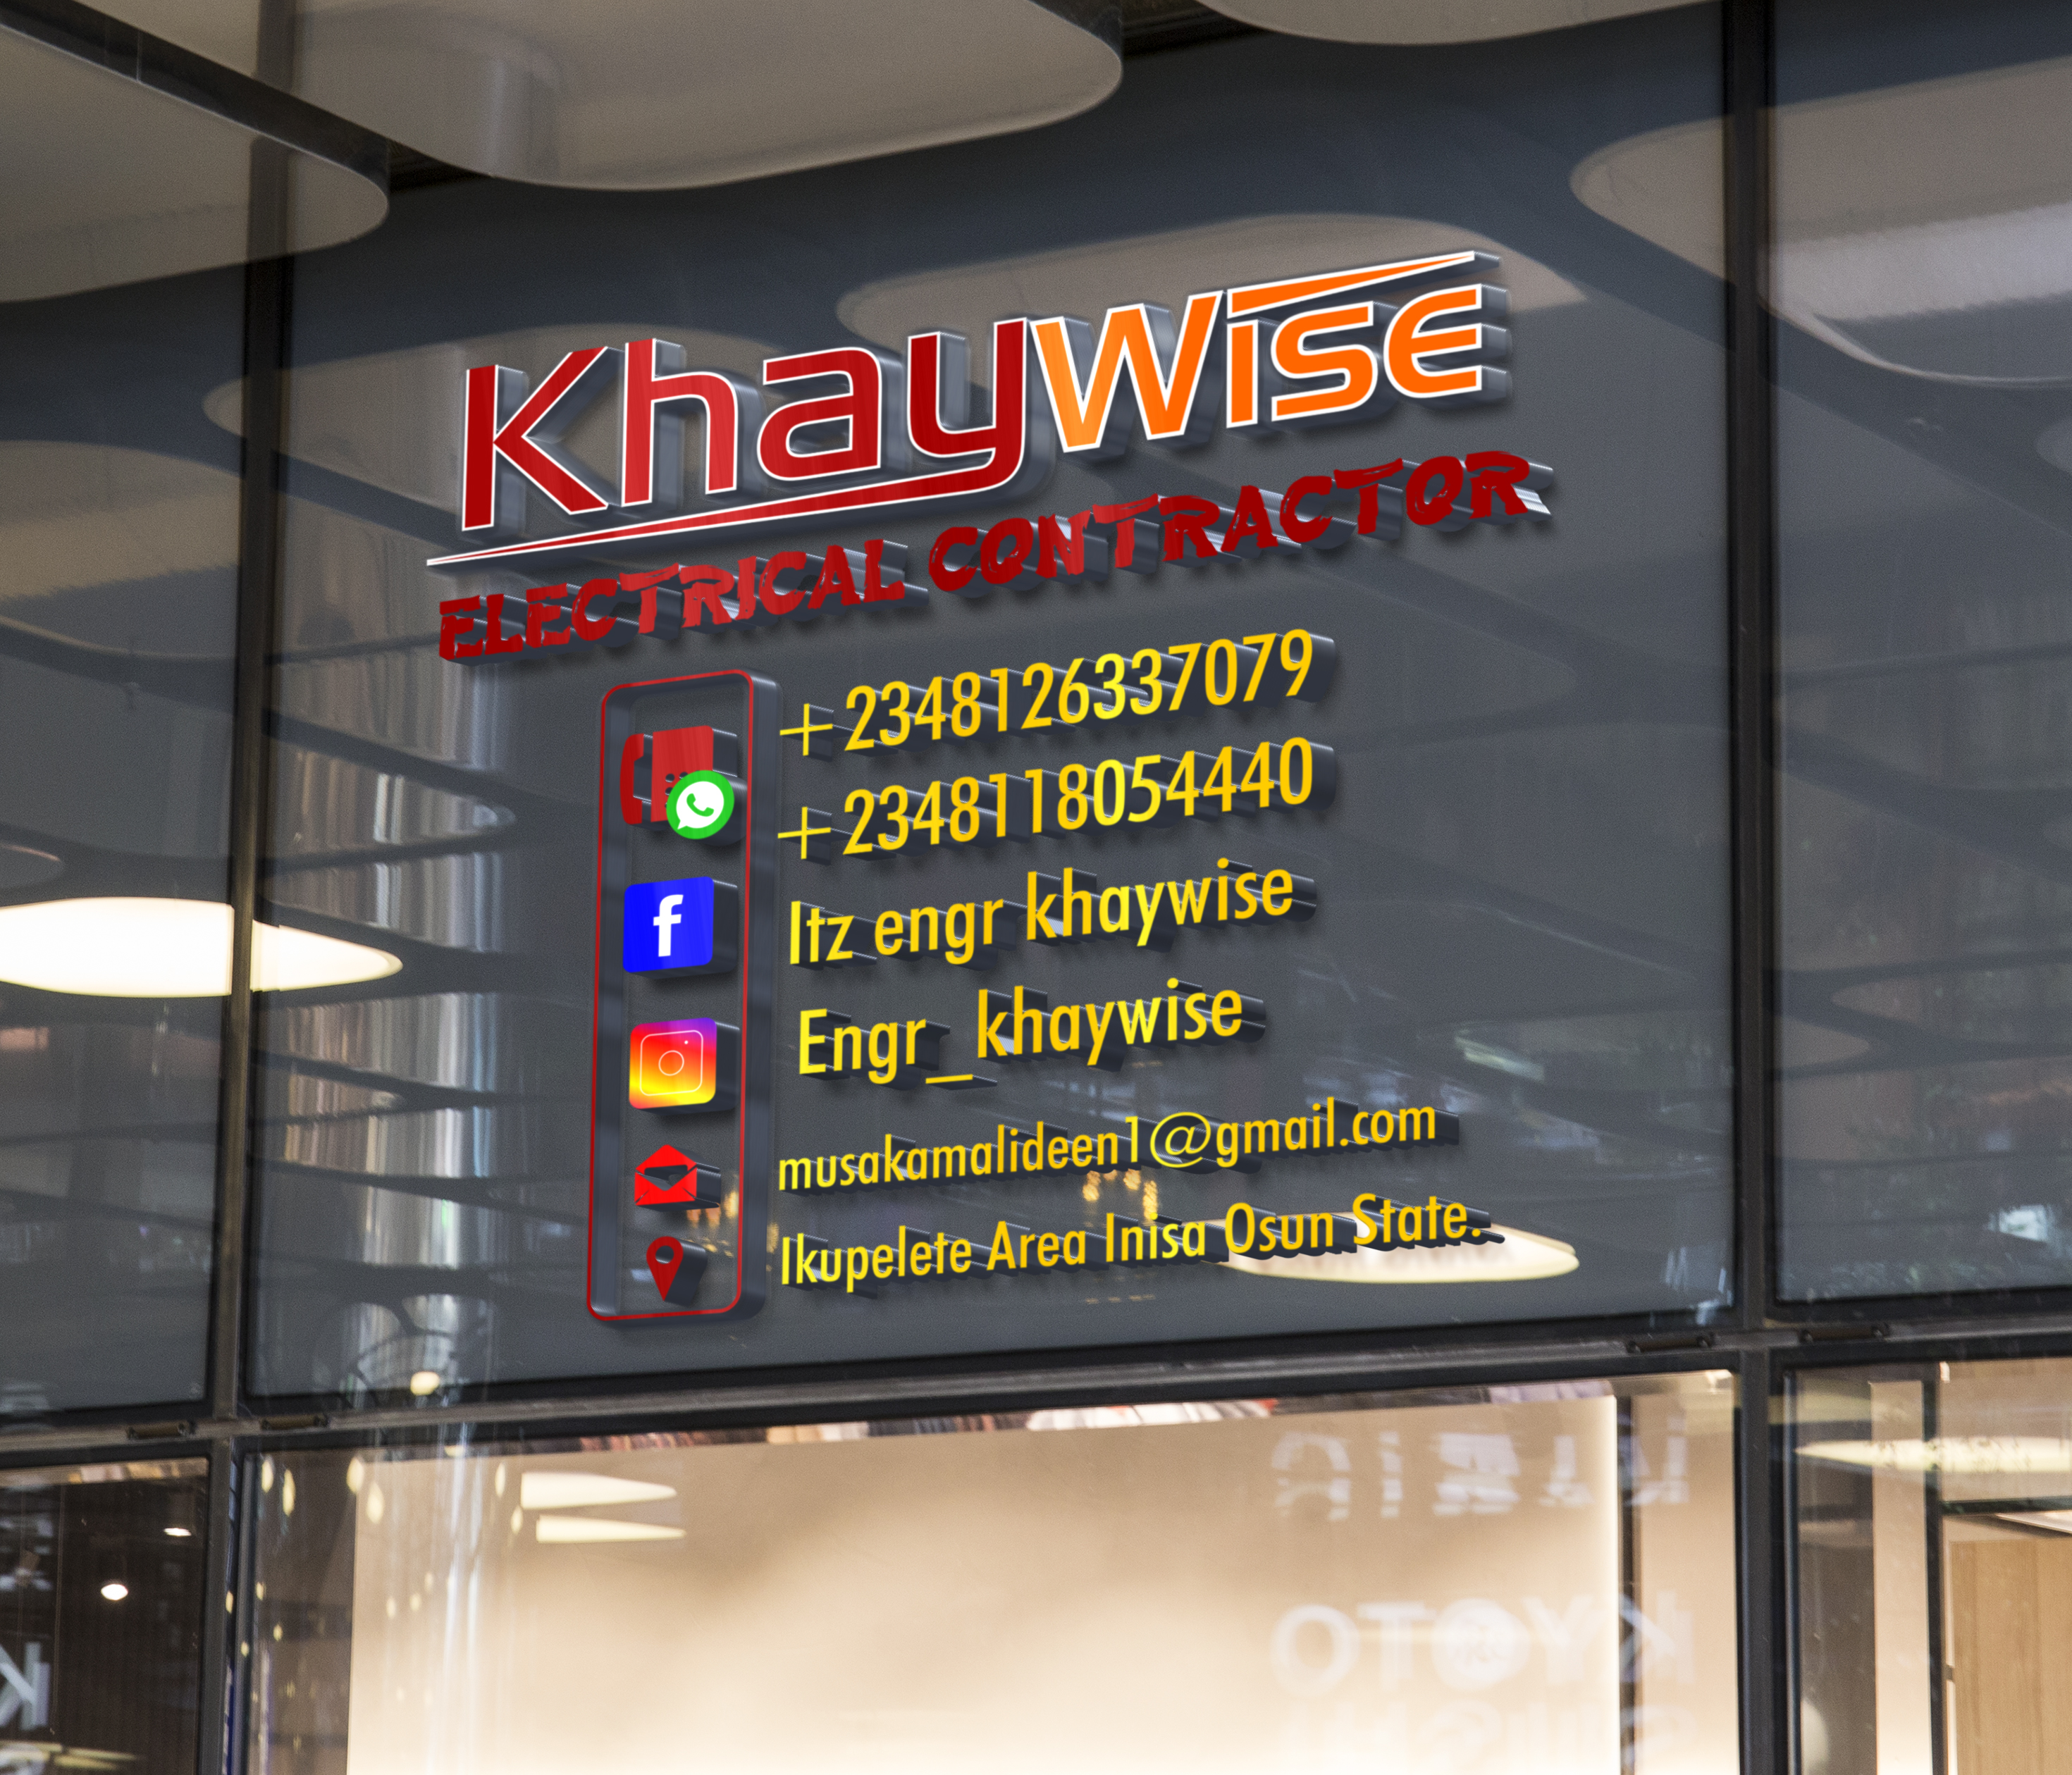 Kaywise ps